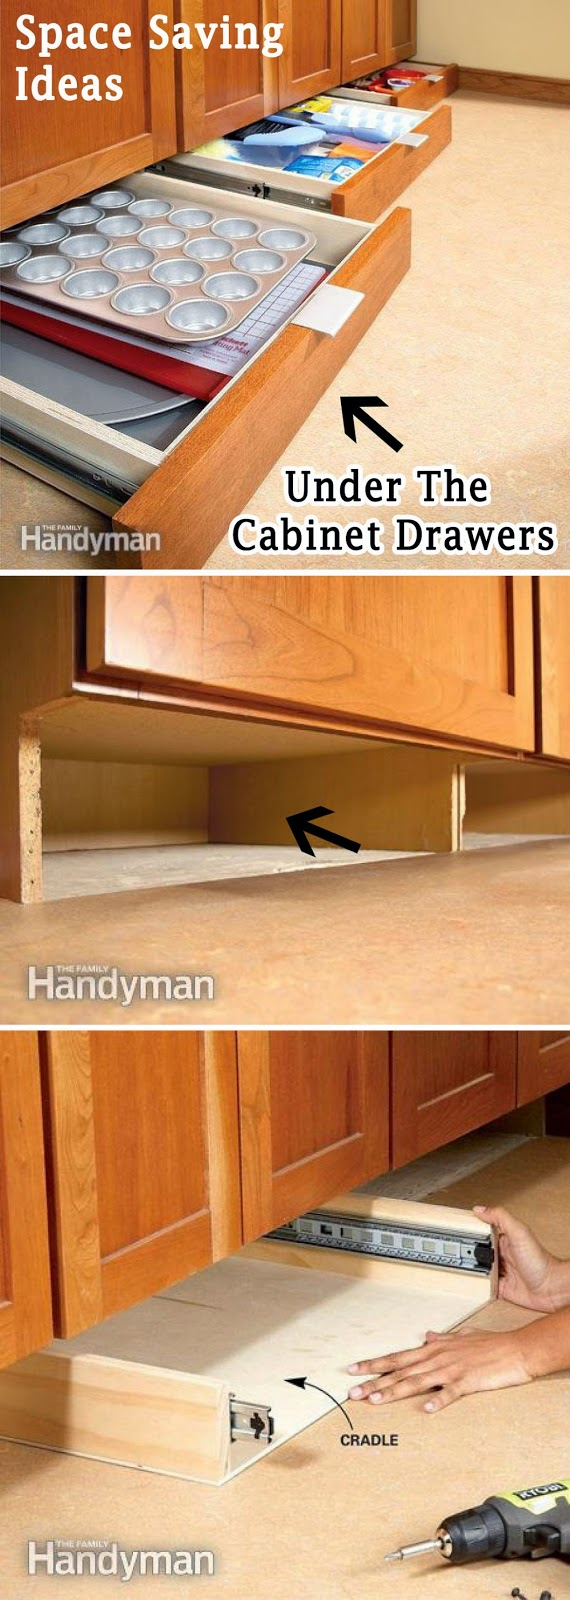 Add More Storage Space in the Kitchen with Under-Cabinet Drawers.